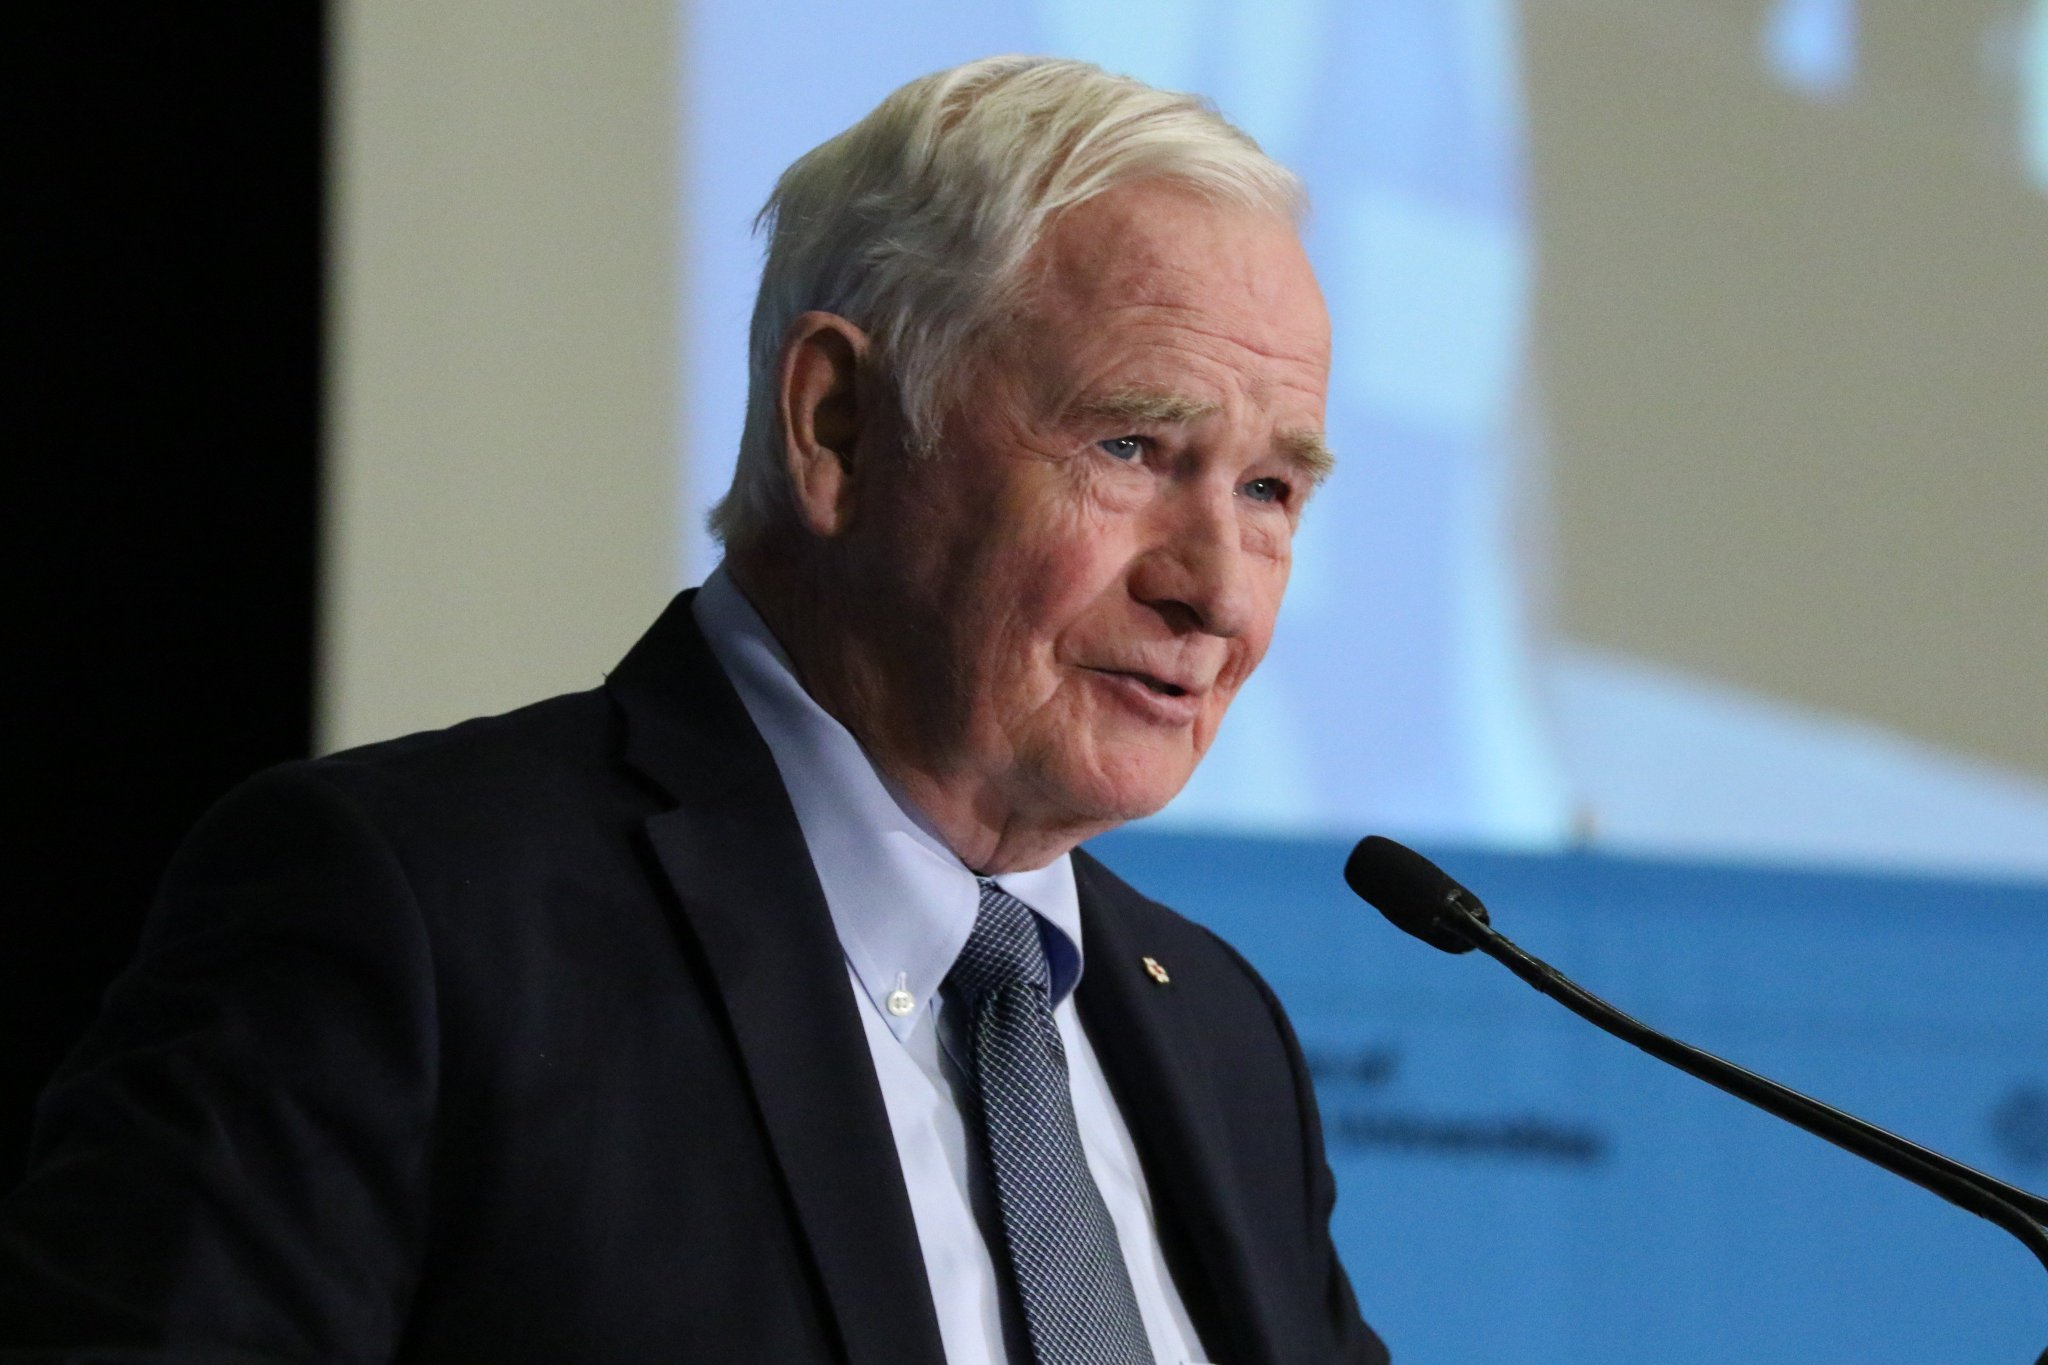 Thumbnail for #Converge2017: His Excellency the Right Honourable David Johnston, Governor General of Canada